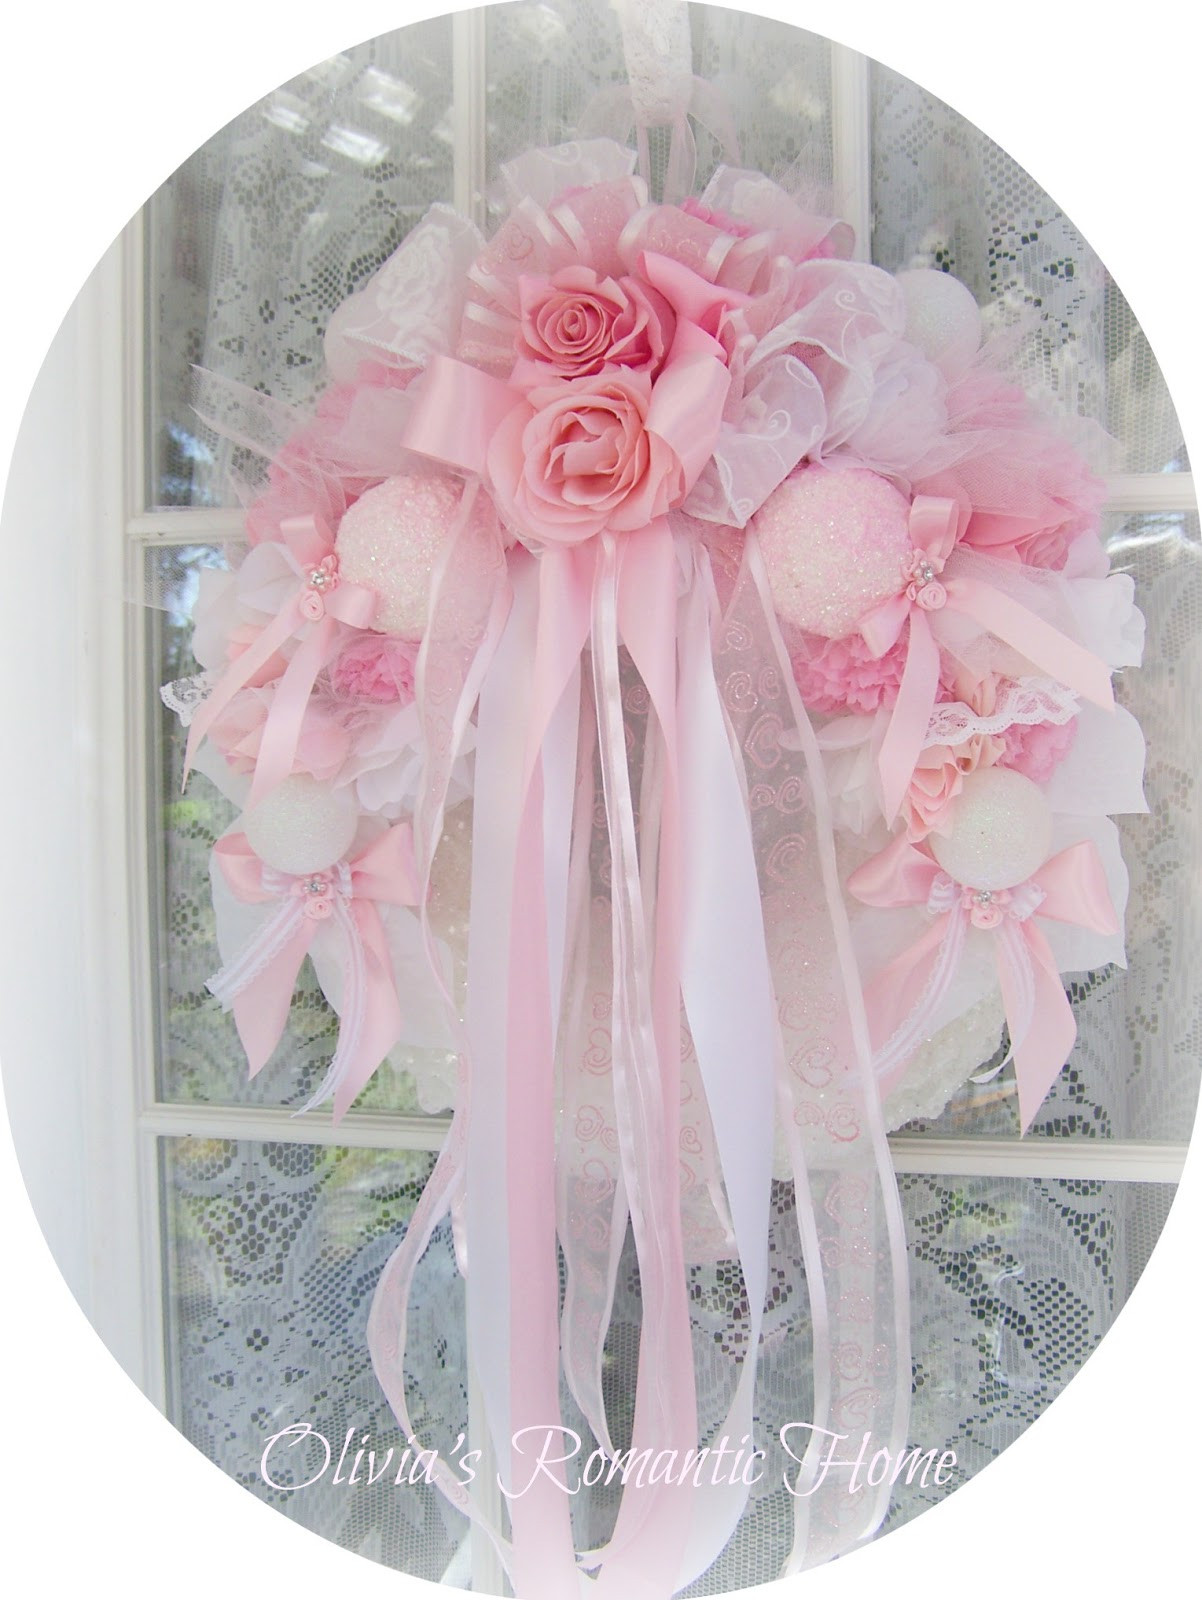 Best ideas about Shabby Chic Christmas . Save or Pin Olivia s Romantic Home Shabby Chic Christmas Now.